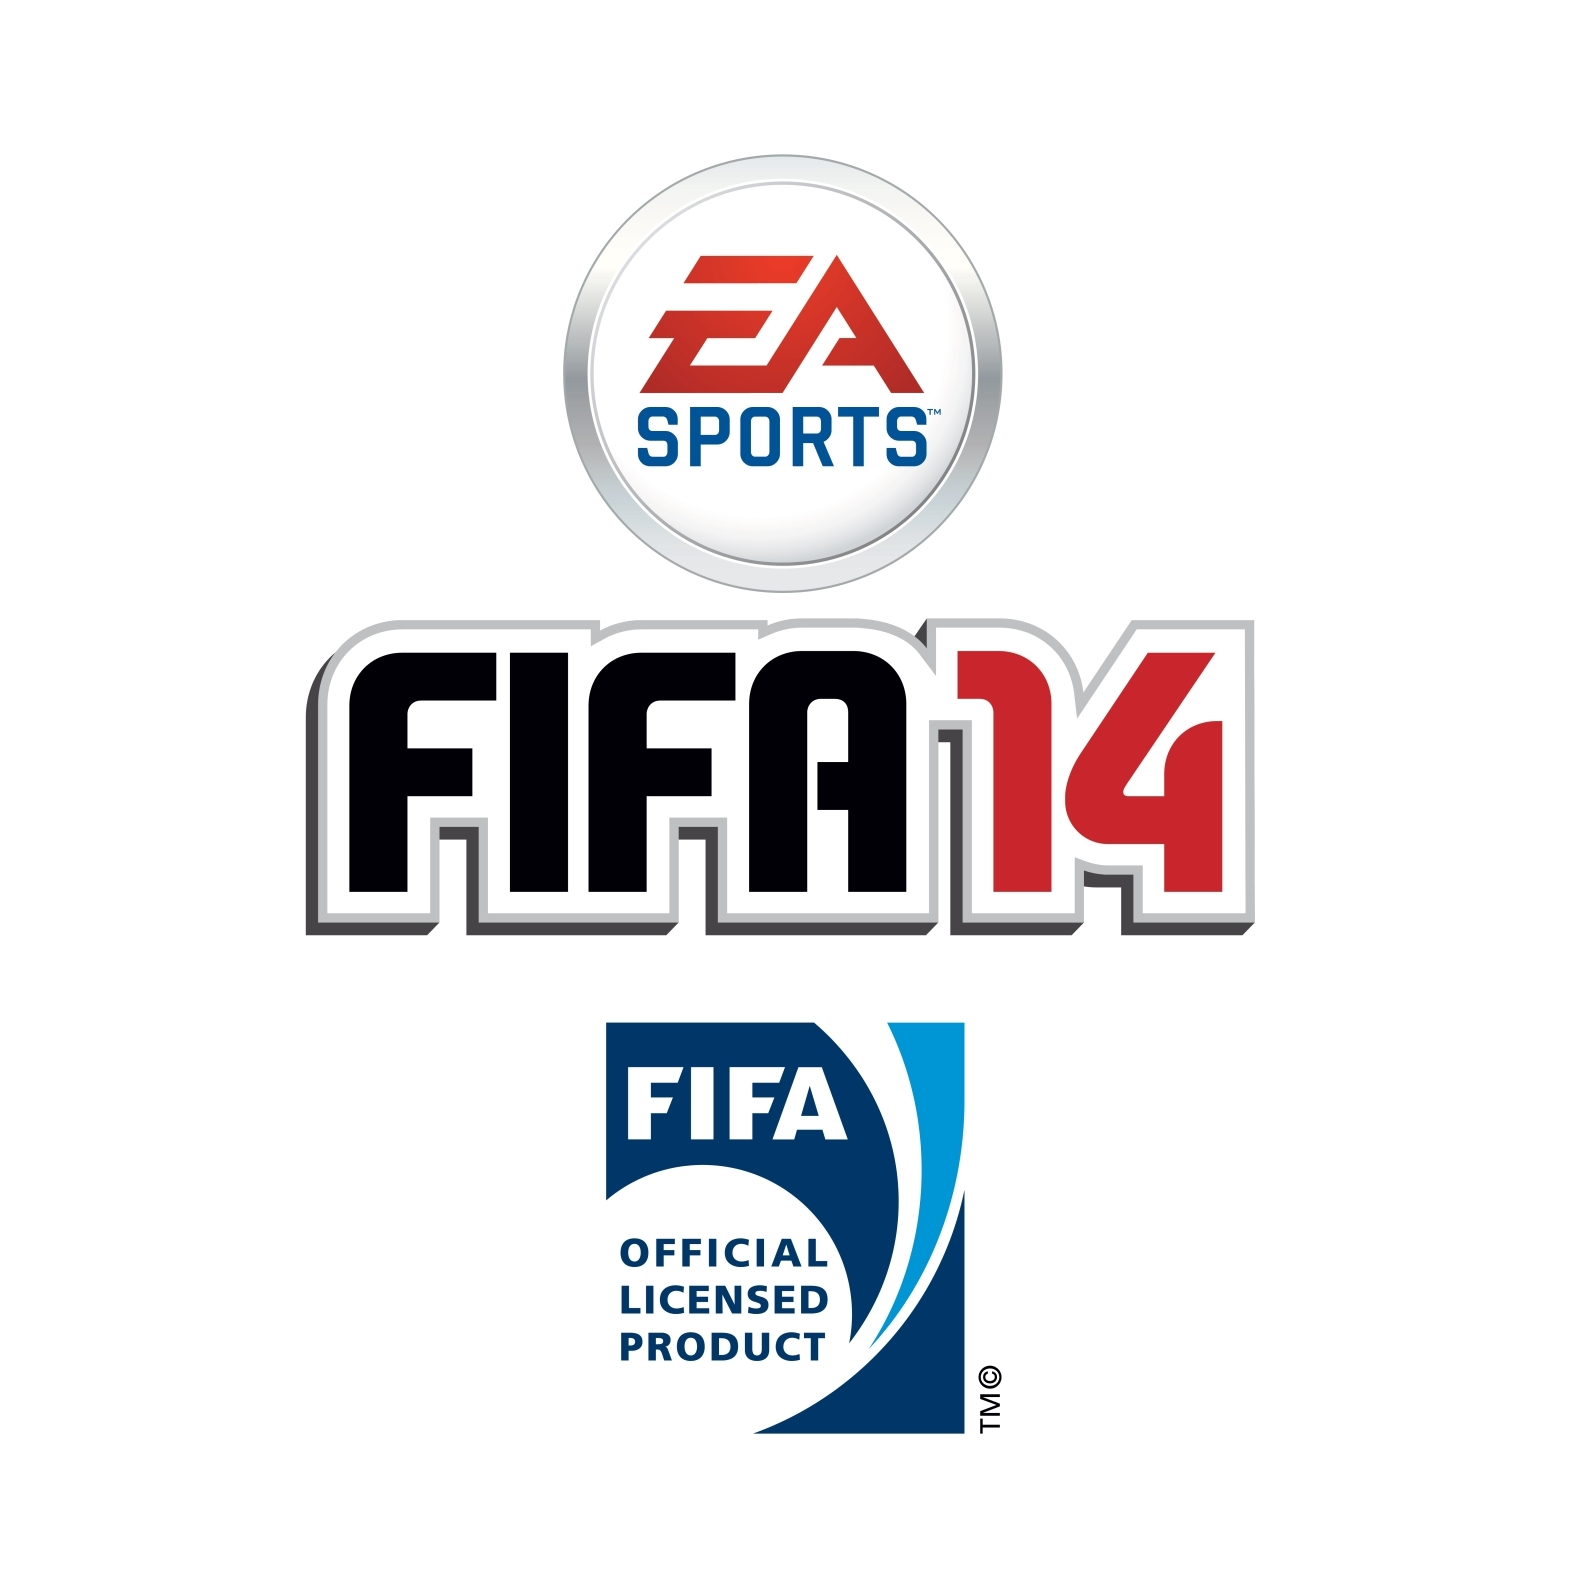 Collectorsedition. Org » blog archive » fifa 14 player & sports.